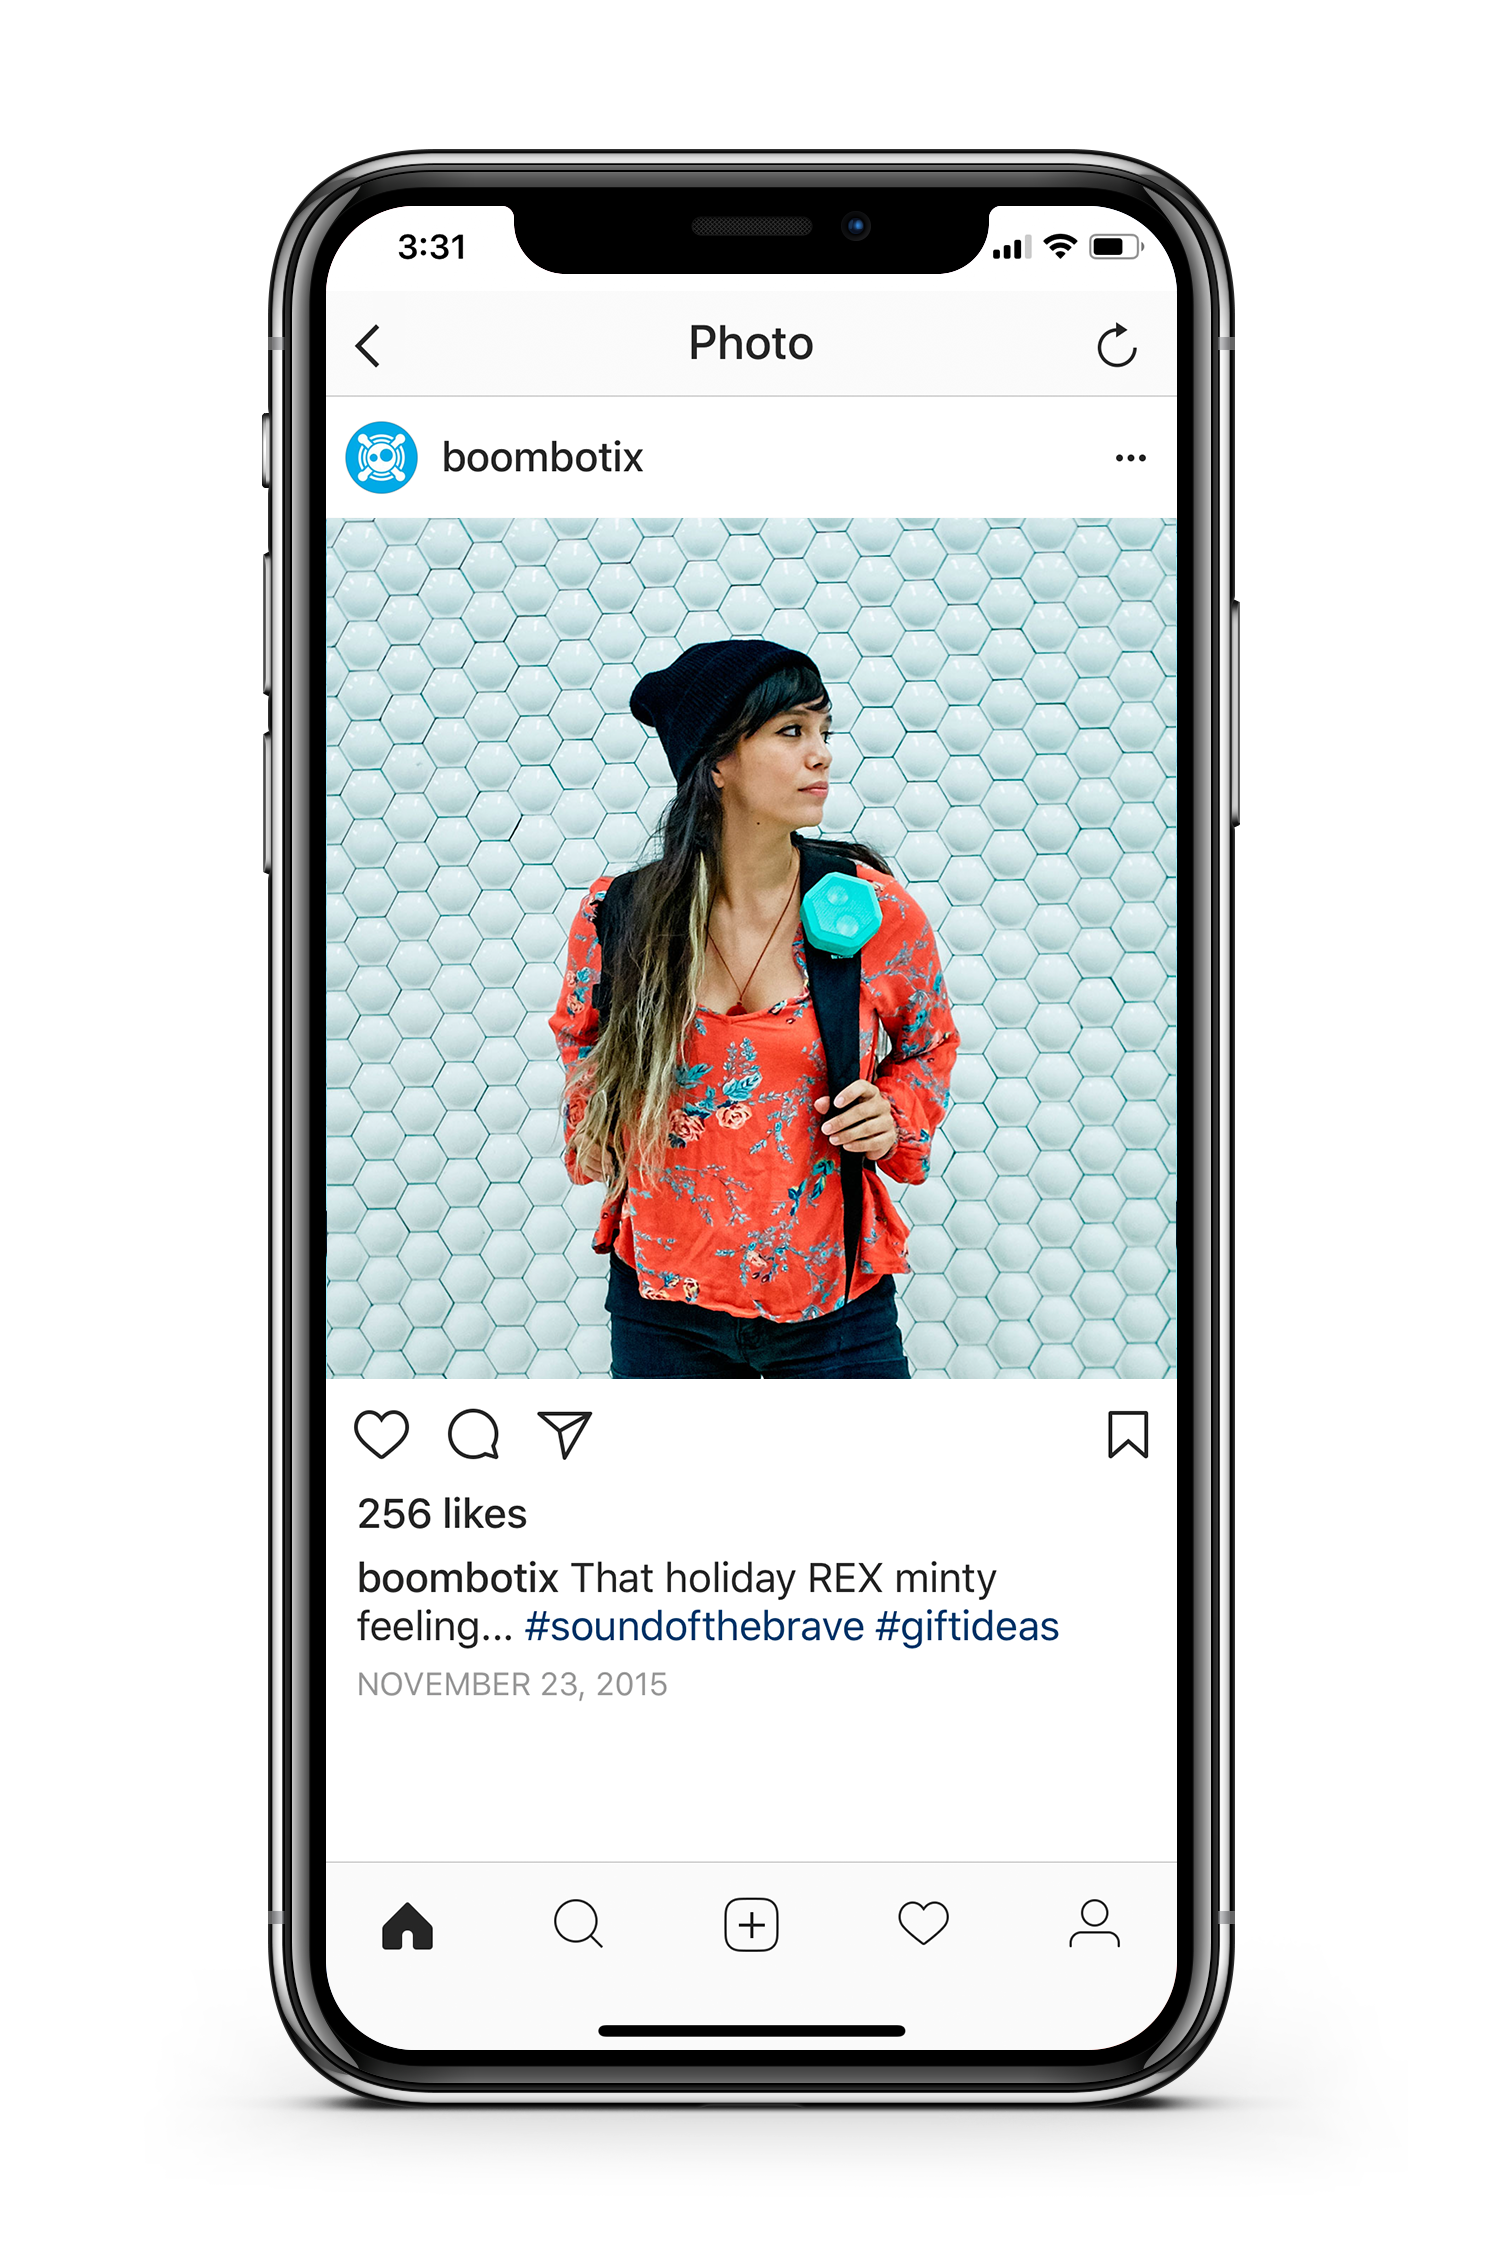 Boombotix instagram post of girl wearing speaker on backpack being displayed on a smartphone